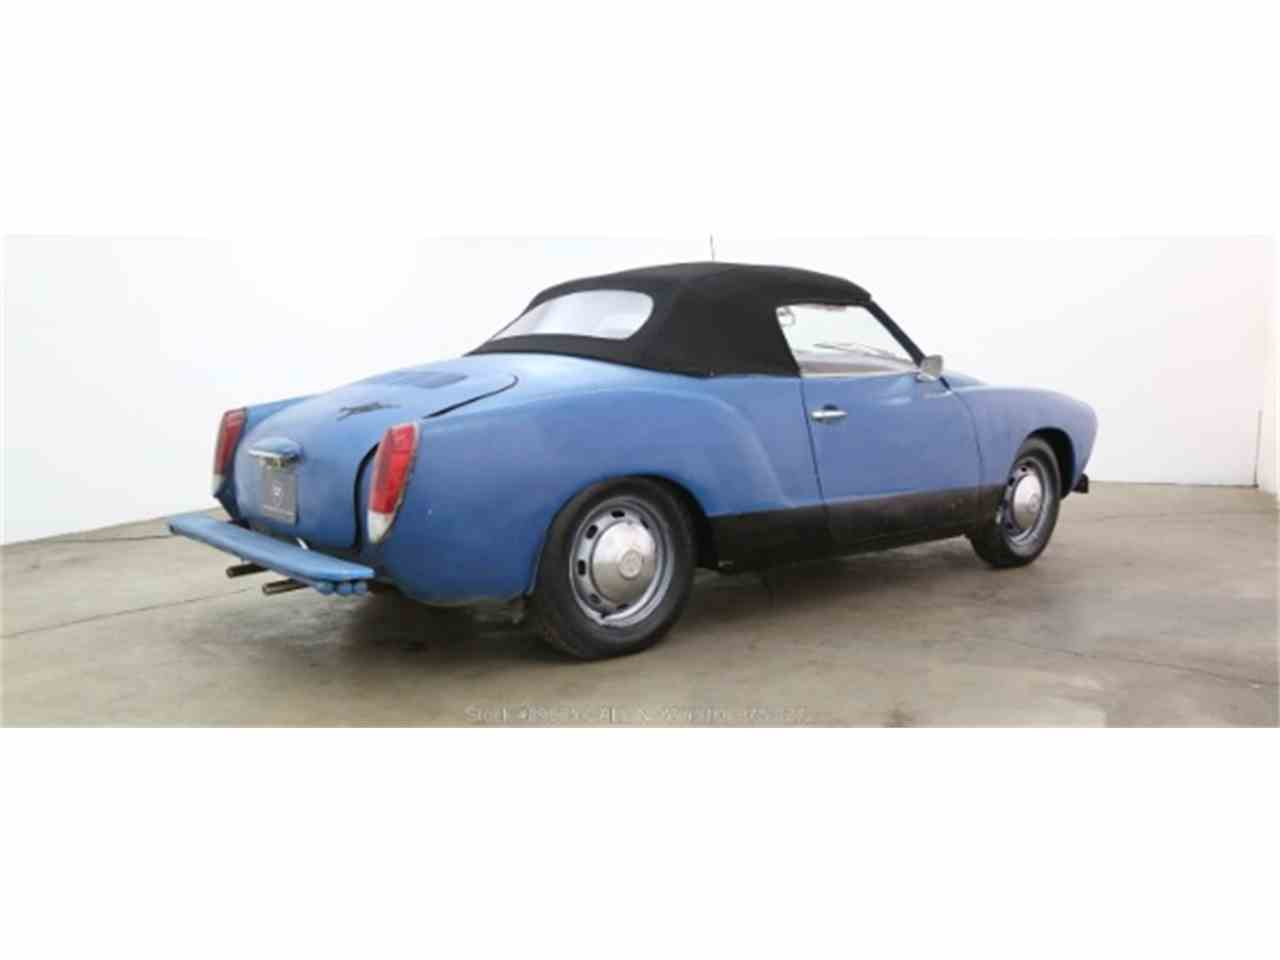 Large Picture of Classic 1973 Volkswagen Karmann Ghia located in California - $8,950.00 - NES9